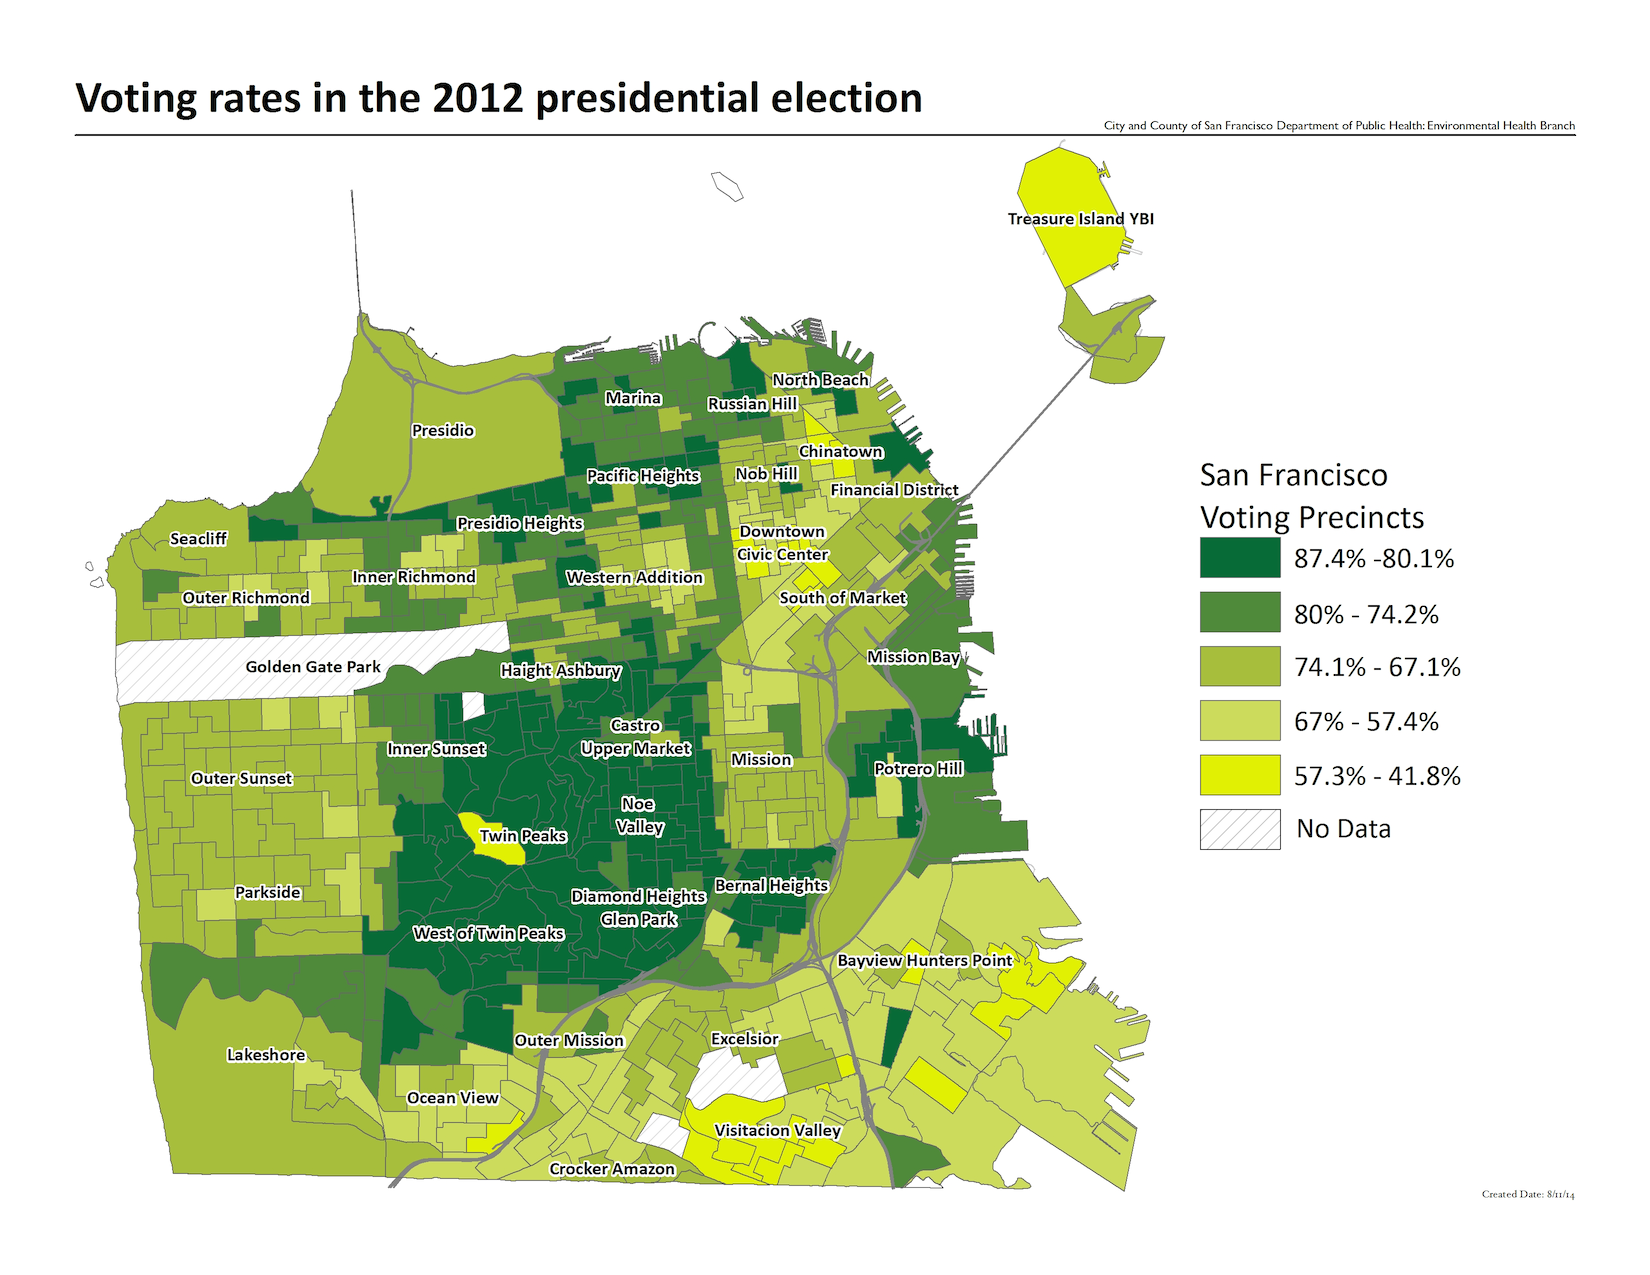 Voting rates in the 2012 presidential election, by precinct. The highest rates were in the Noe Valley and Diamond Heights neighborhoods. The Lowest rates include the Visitacion Valley and Bayview Hunters Point neighborhoods.